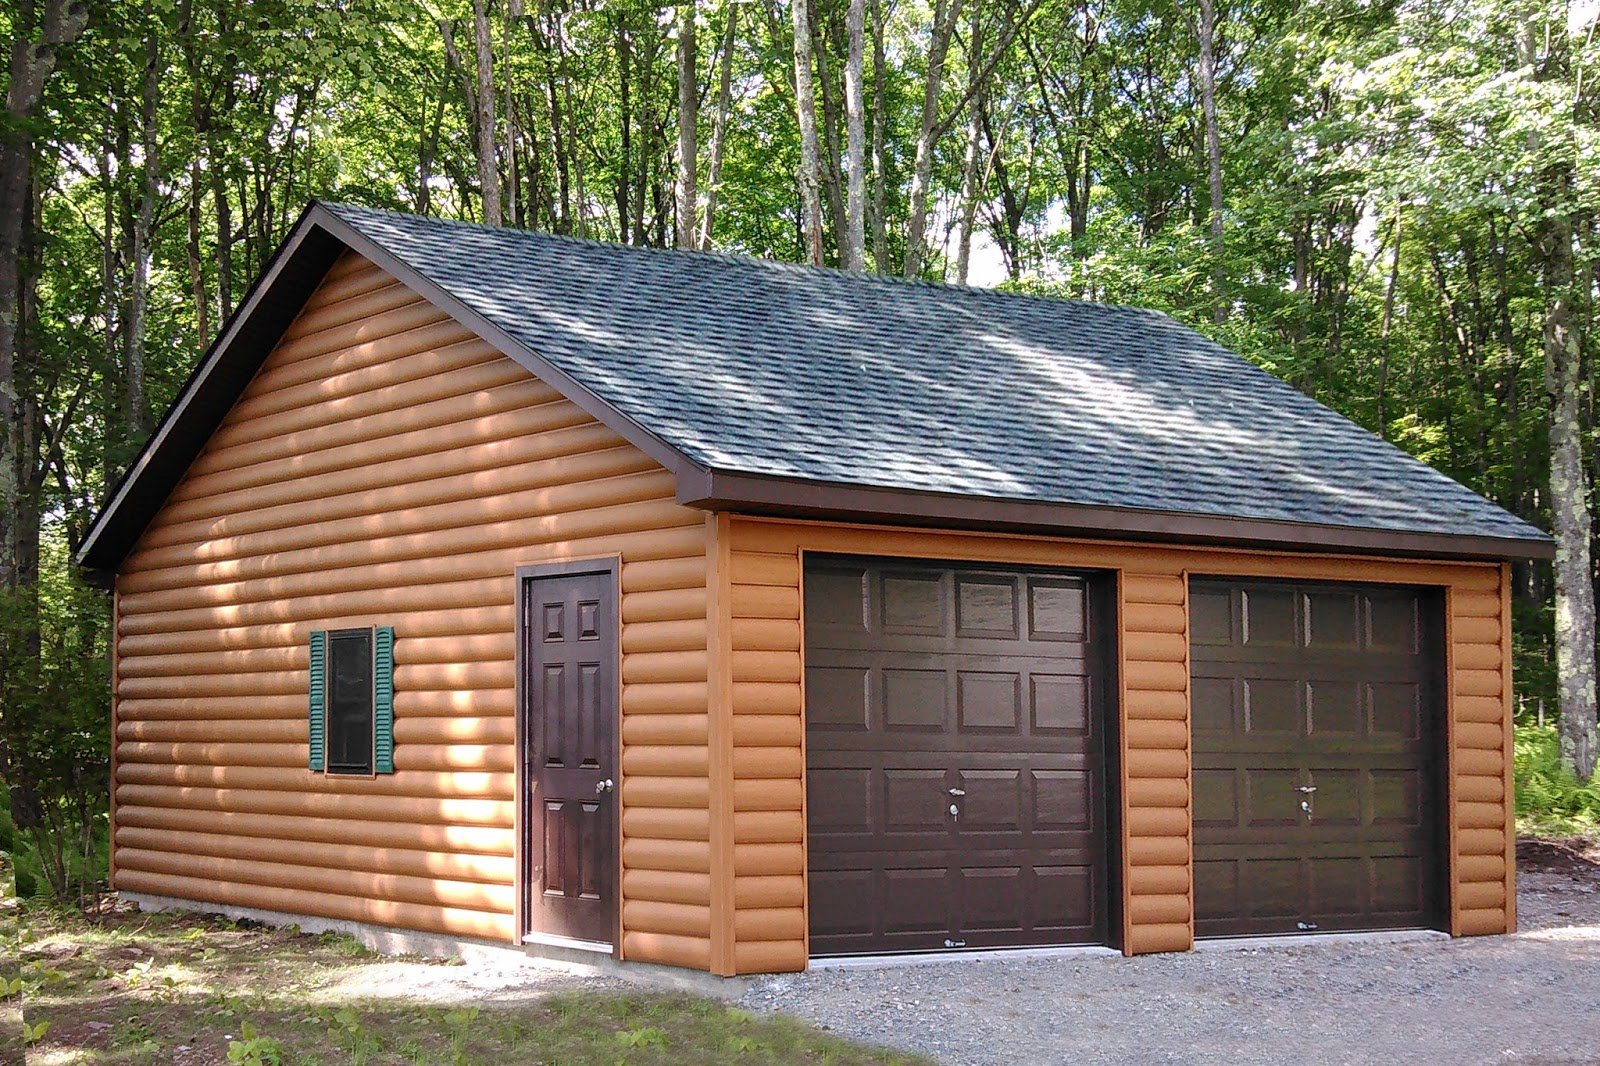 Prefab car garages for sale in pa nj ny ct de md va for Two car garage with loft cost